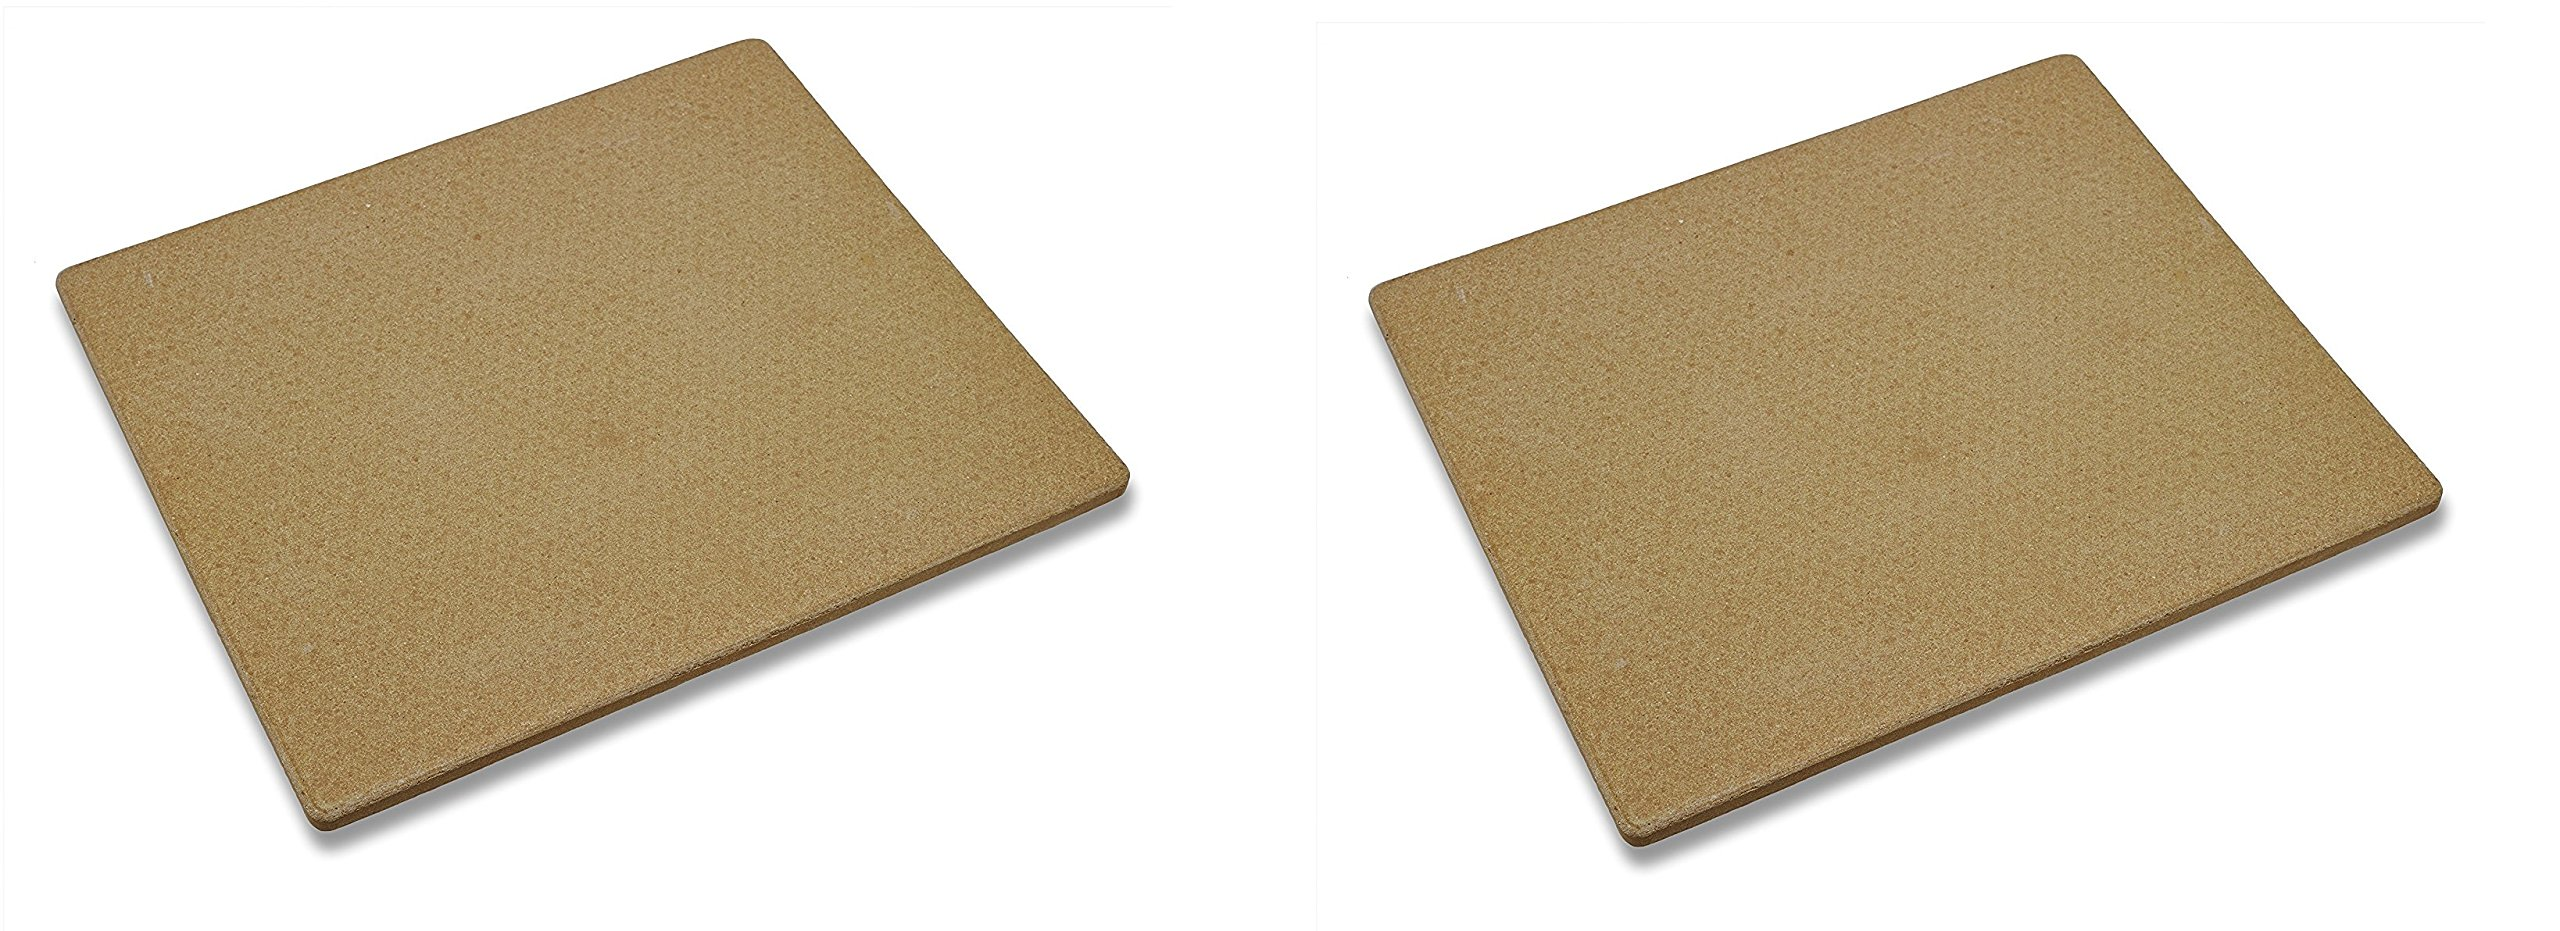 Old Stone Oven Rectangular Pizza Stone, 14.5-Inch x 16.5-Inch (Pack of 2)